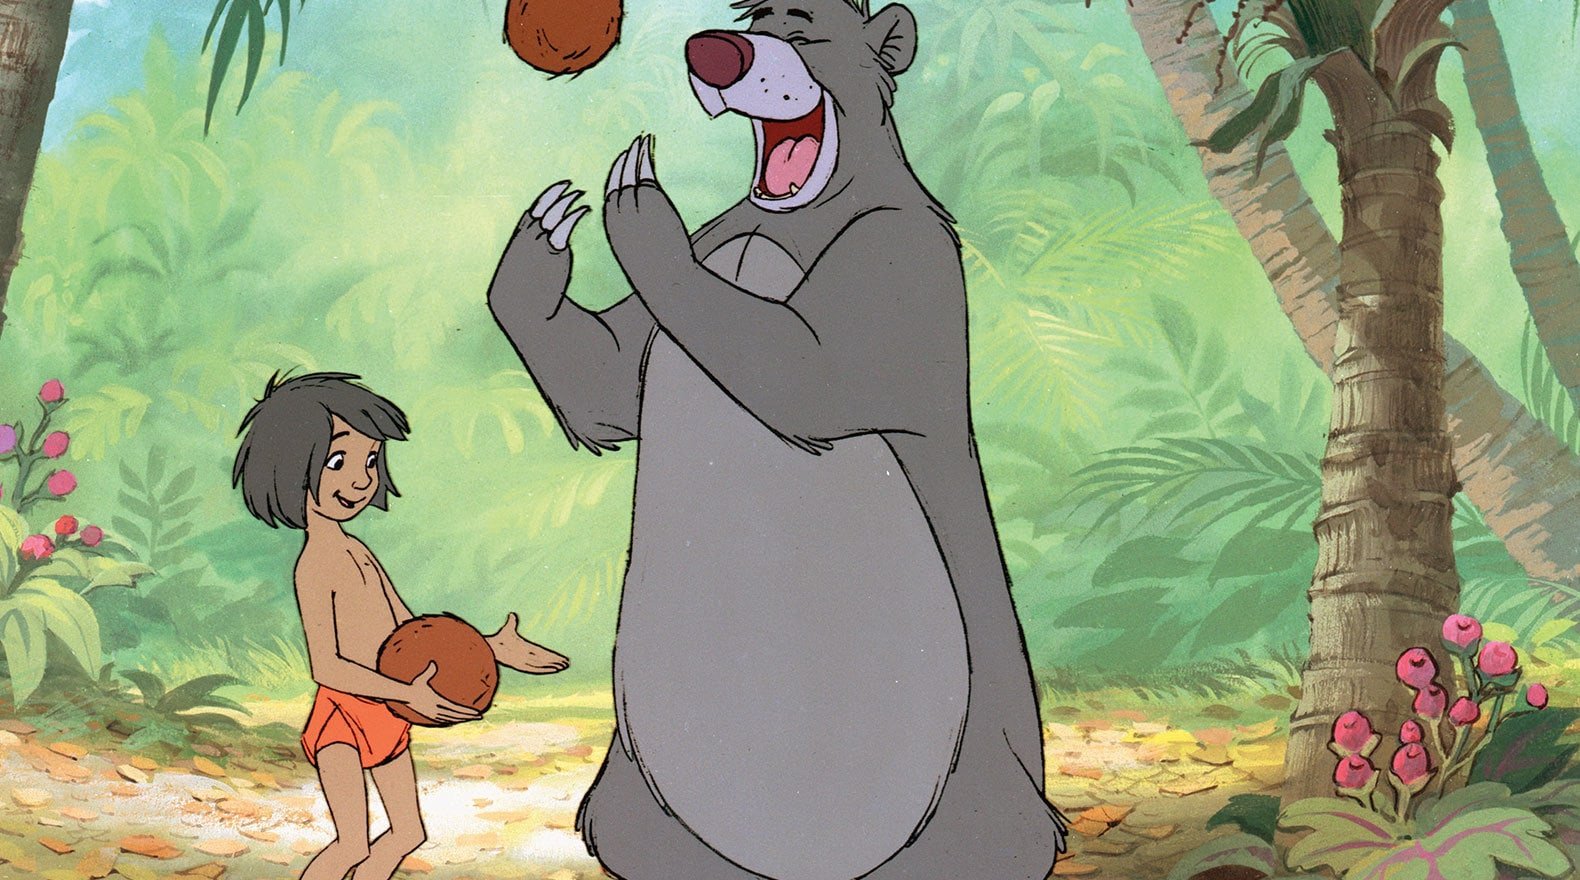 Baloo teaches Mowgli about the bare necessities of life.